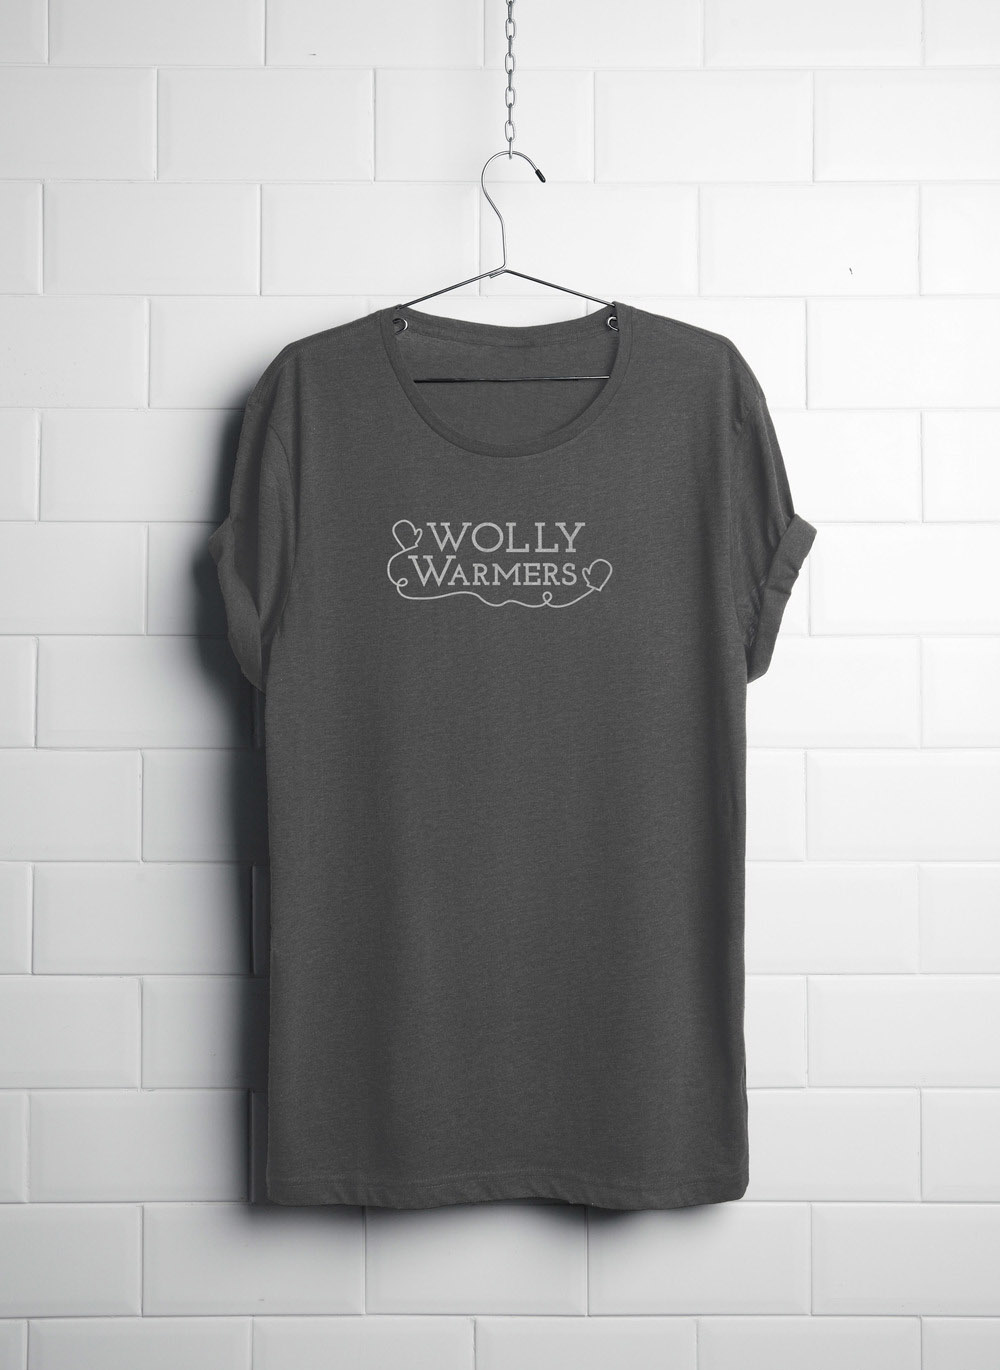 Wolly logo on gray t-shirt